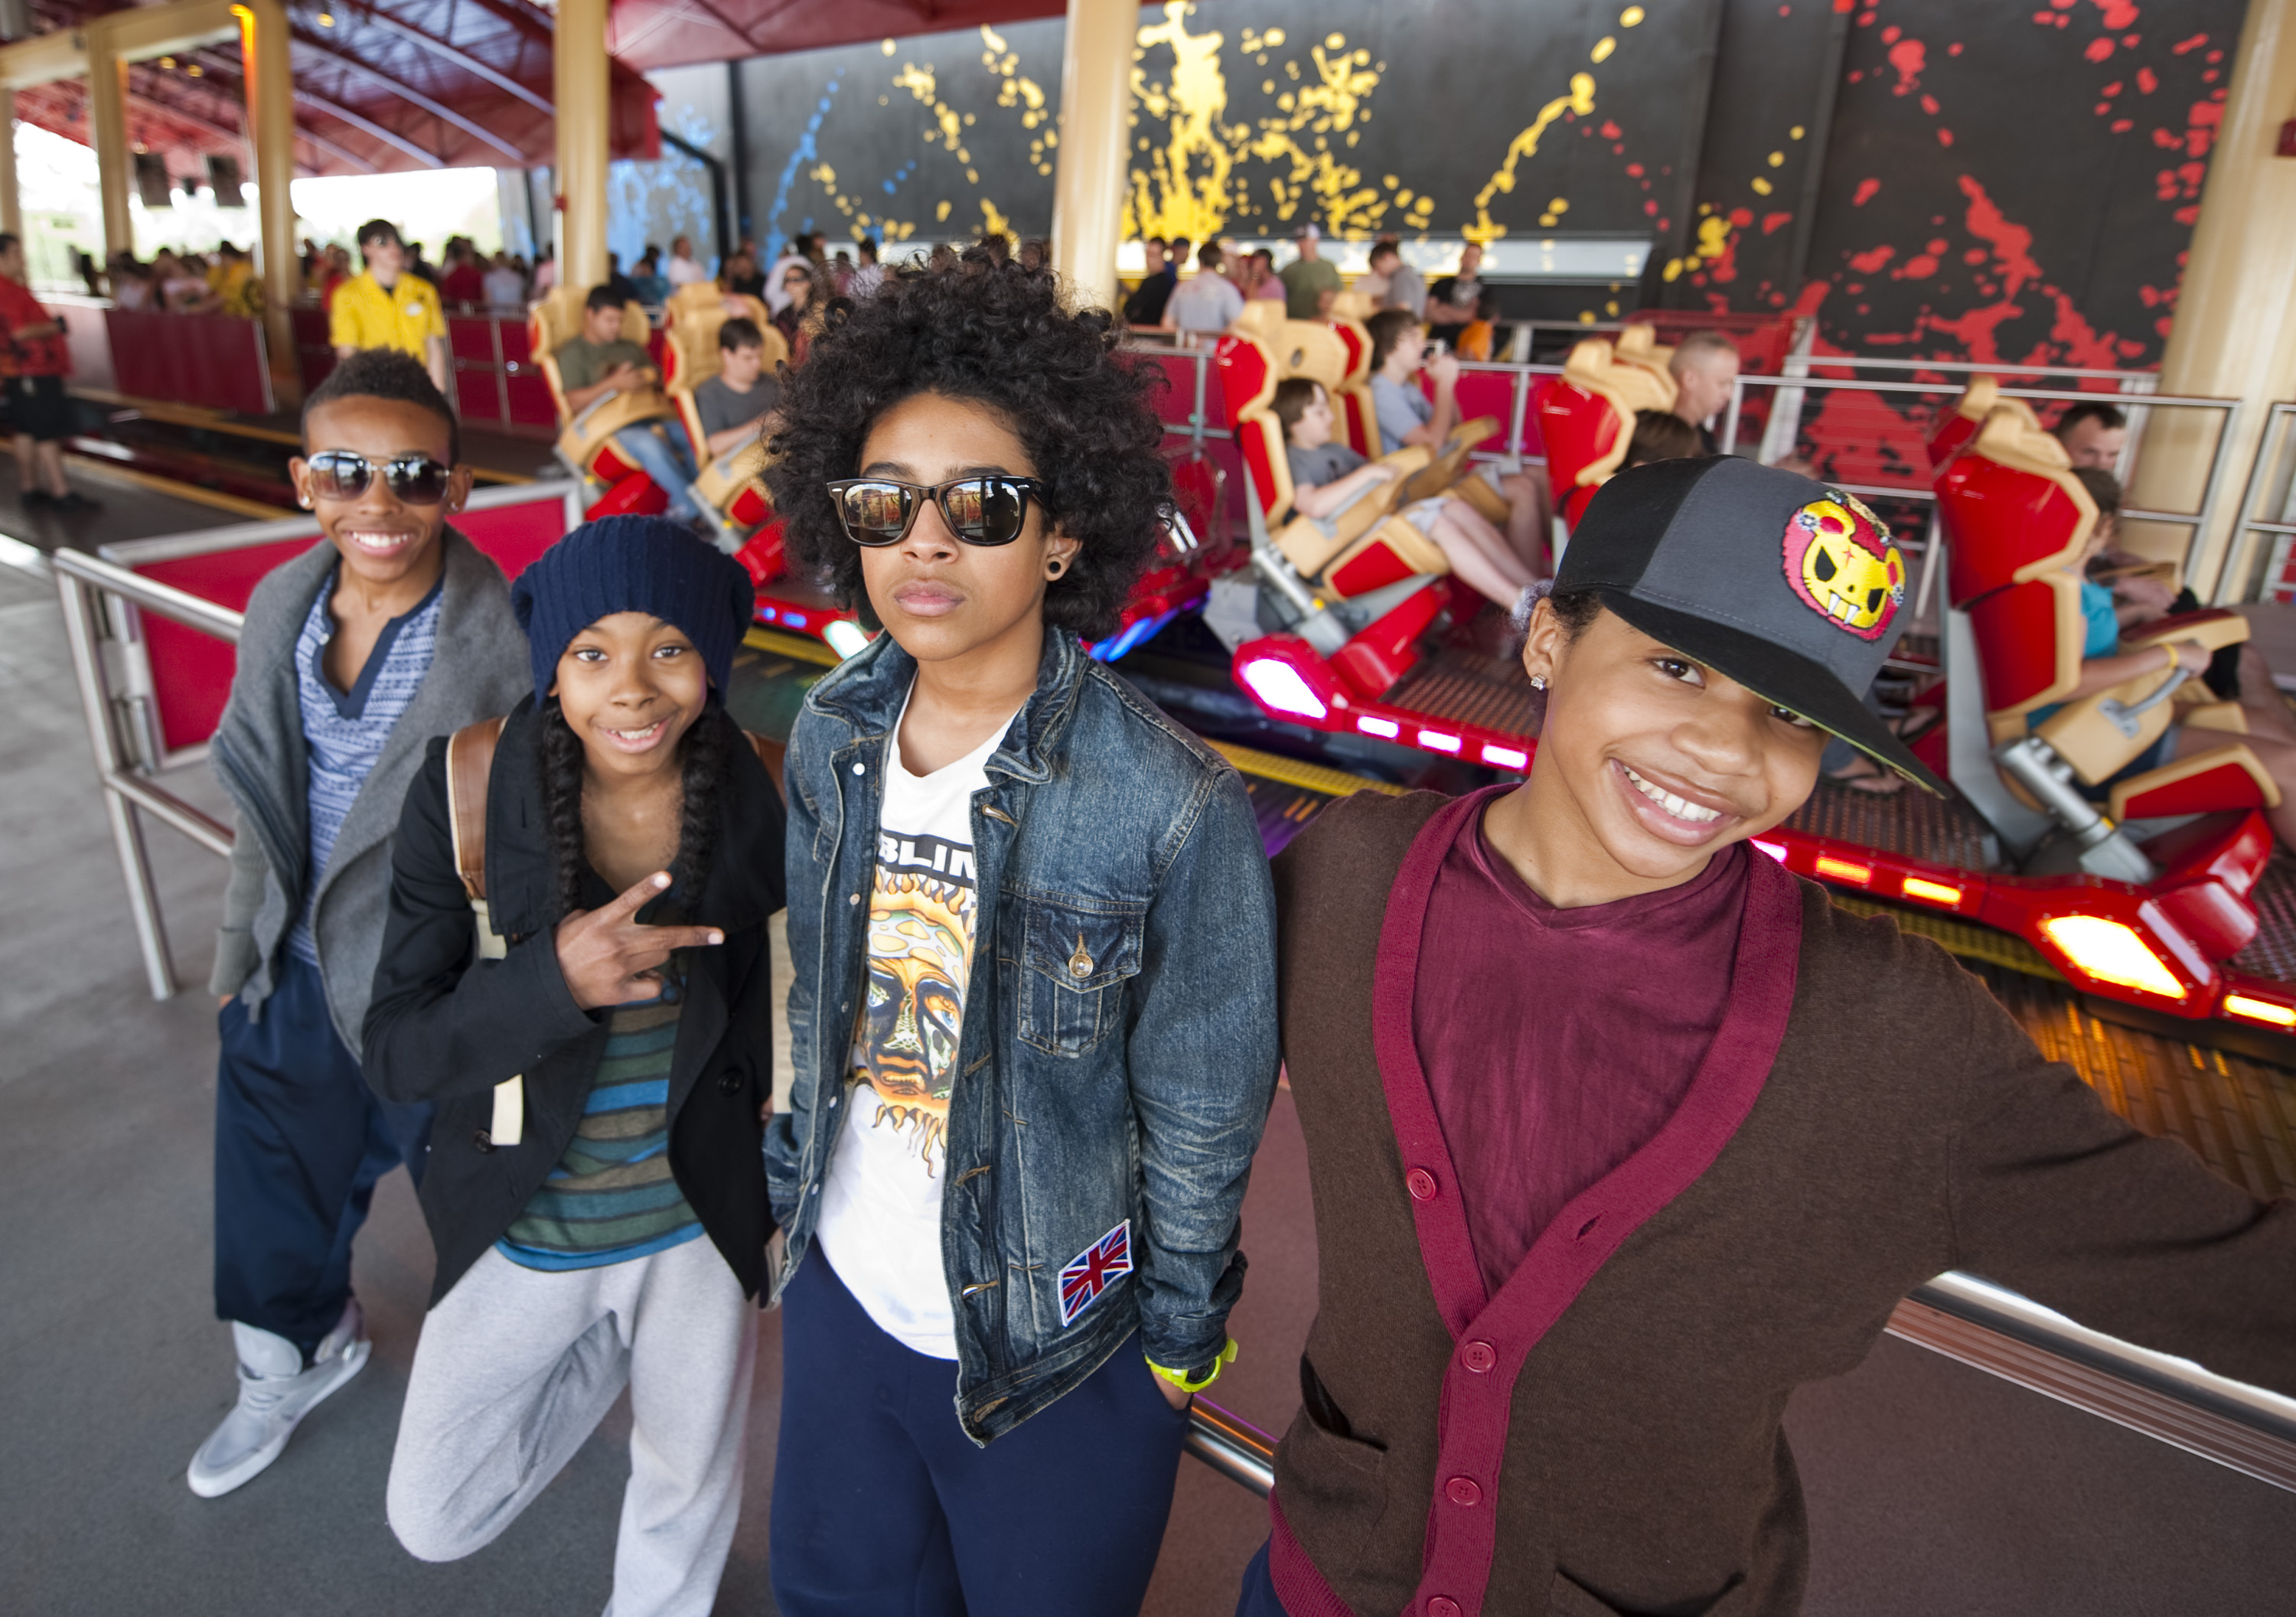 Mindless Behavior On Rip Ride Rockit Leads To Bieber Fever